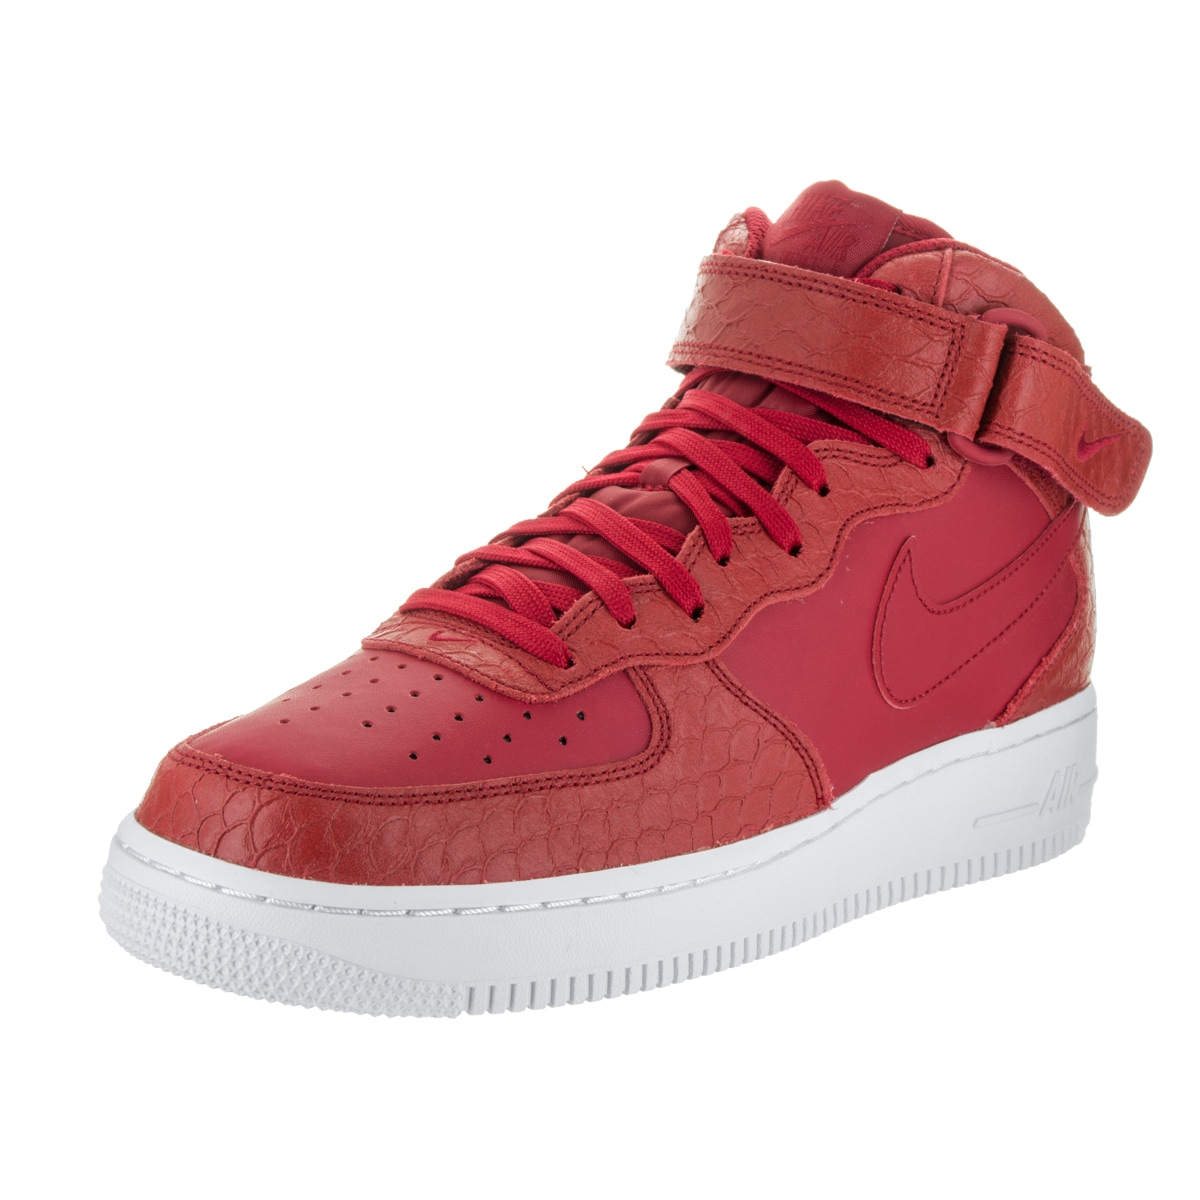 Nike Men's Air Force 1 Mid '07 LV8 Basketball Shoe (8), R...